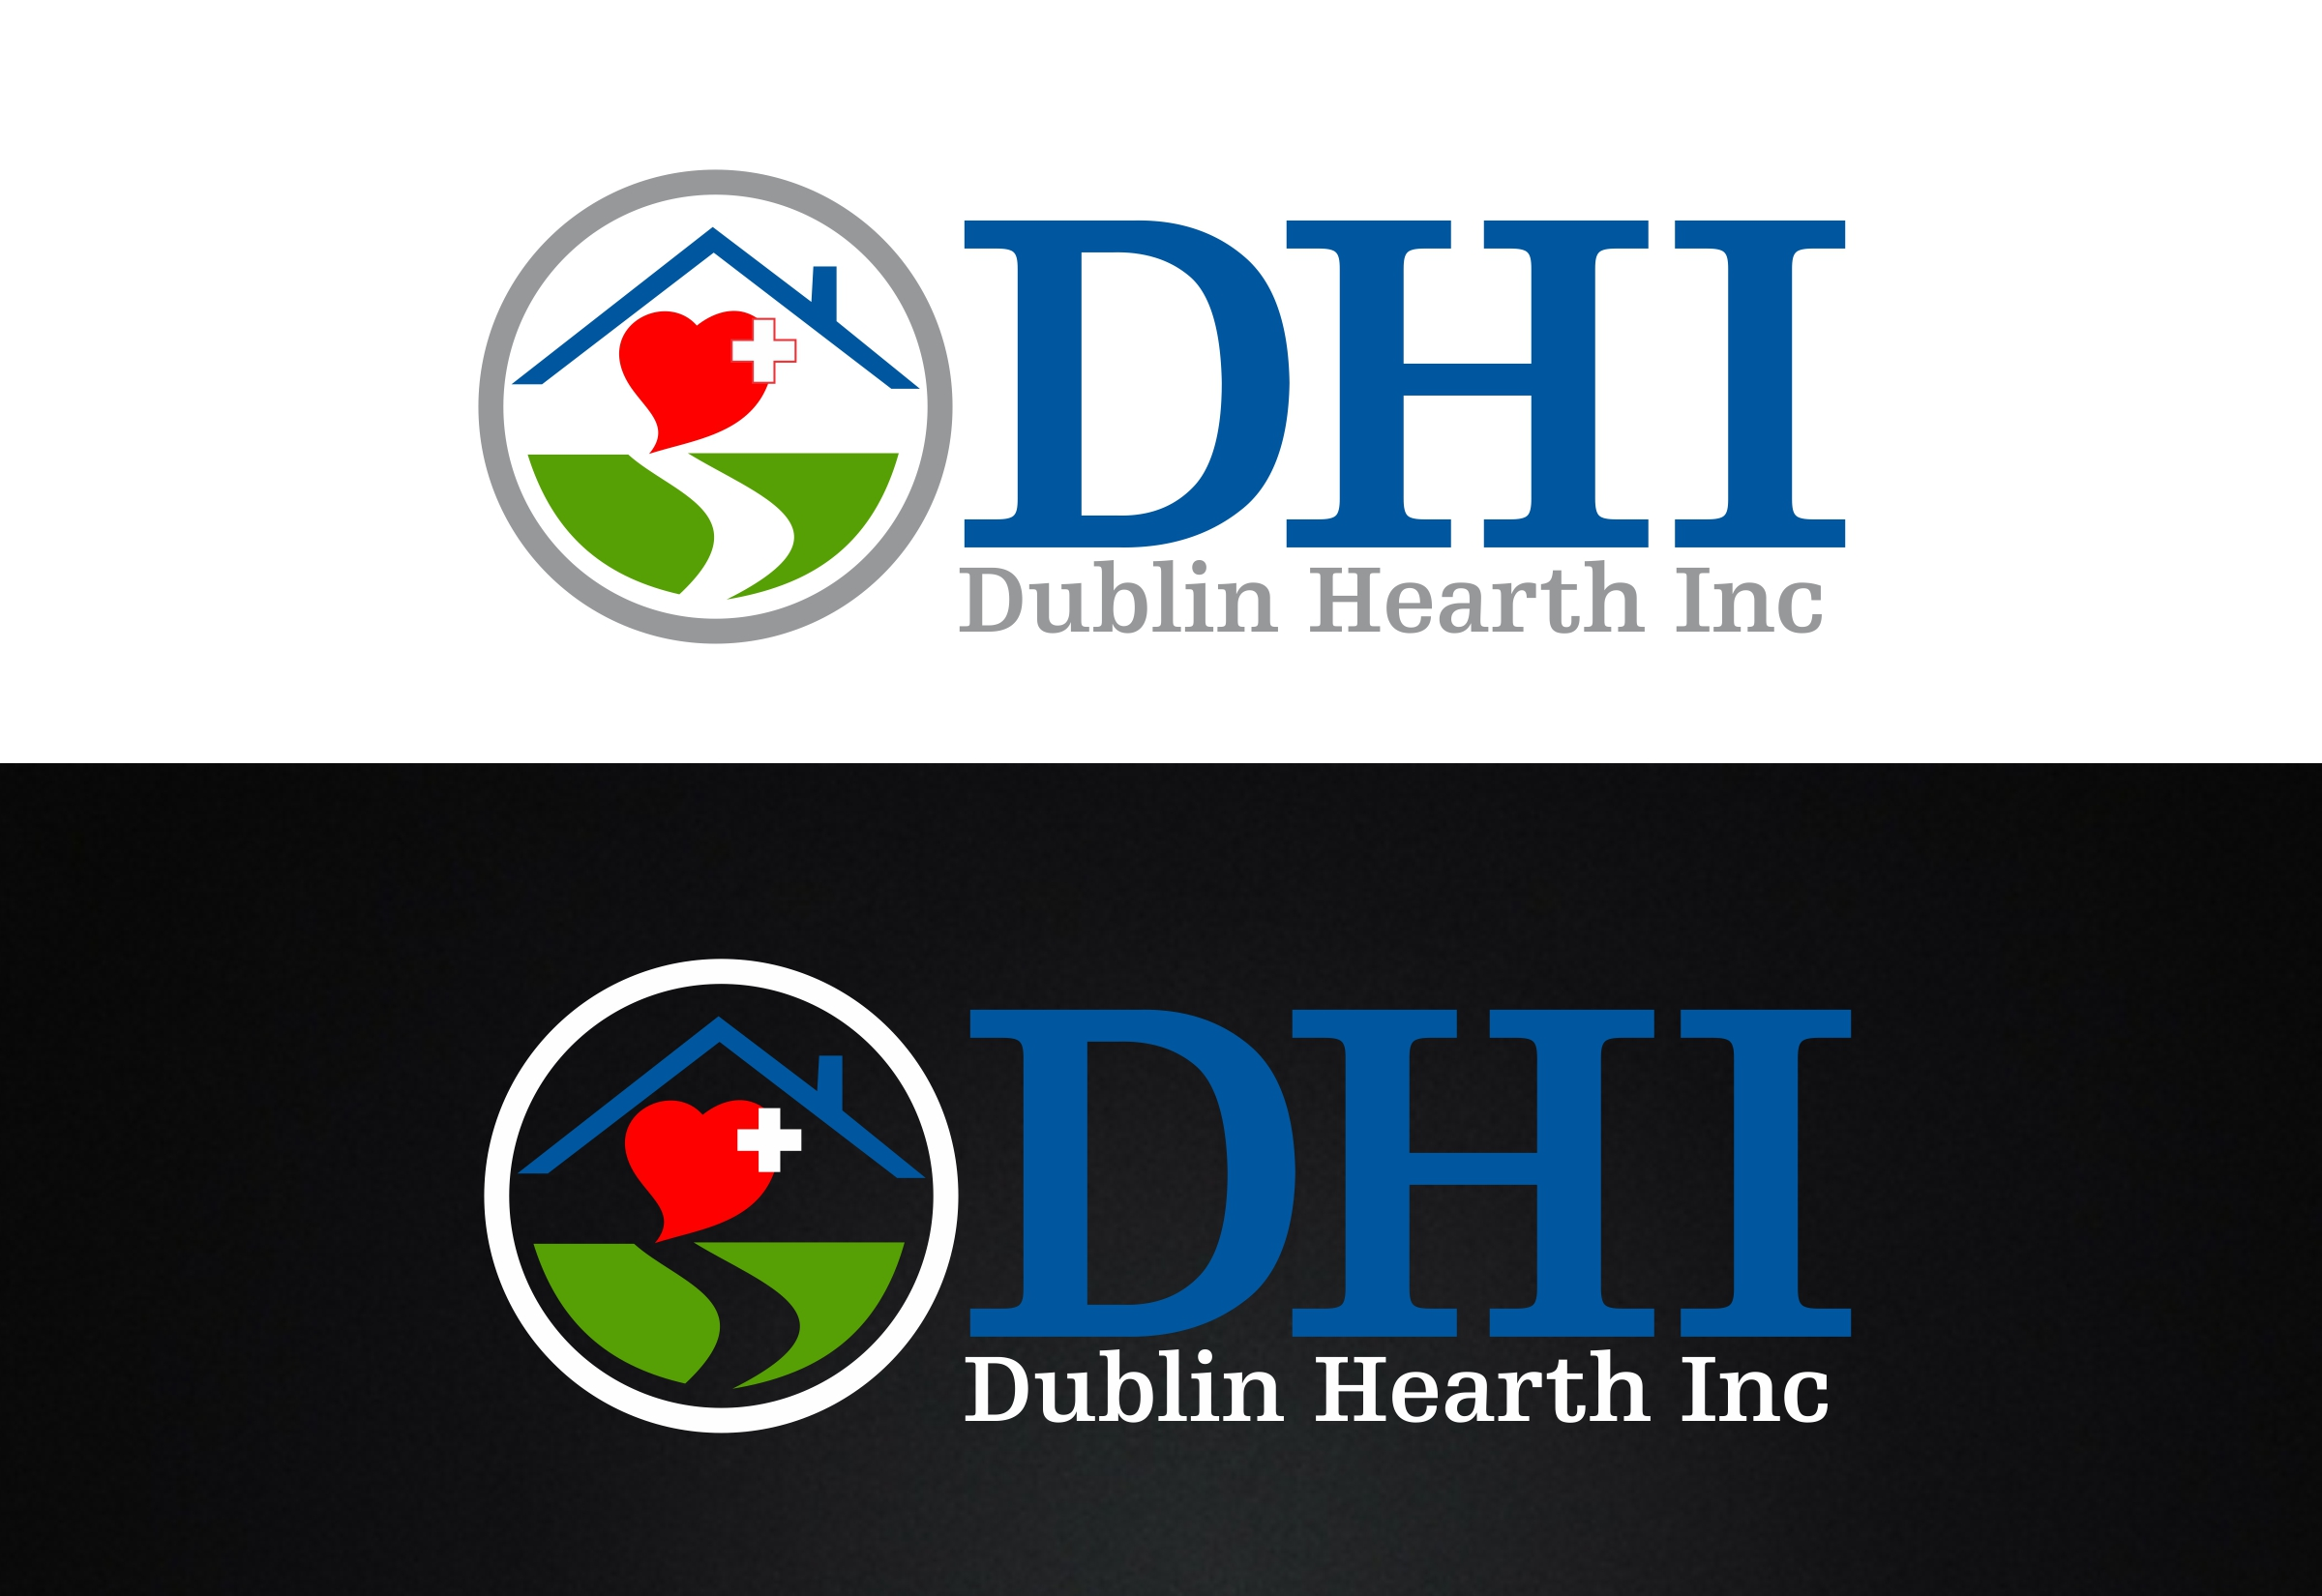 Logo Design by Web Sourcing - Entry No. 42 in the Logo Design Contest clean professional  Logo Design for Dublin Hearth Inc. with a splash of fun with letter head.